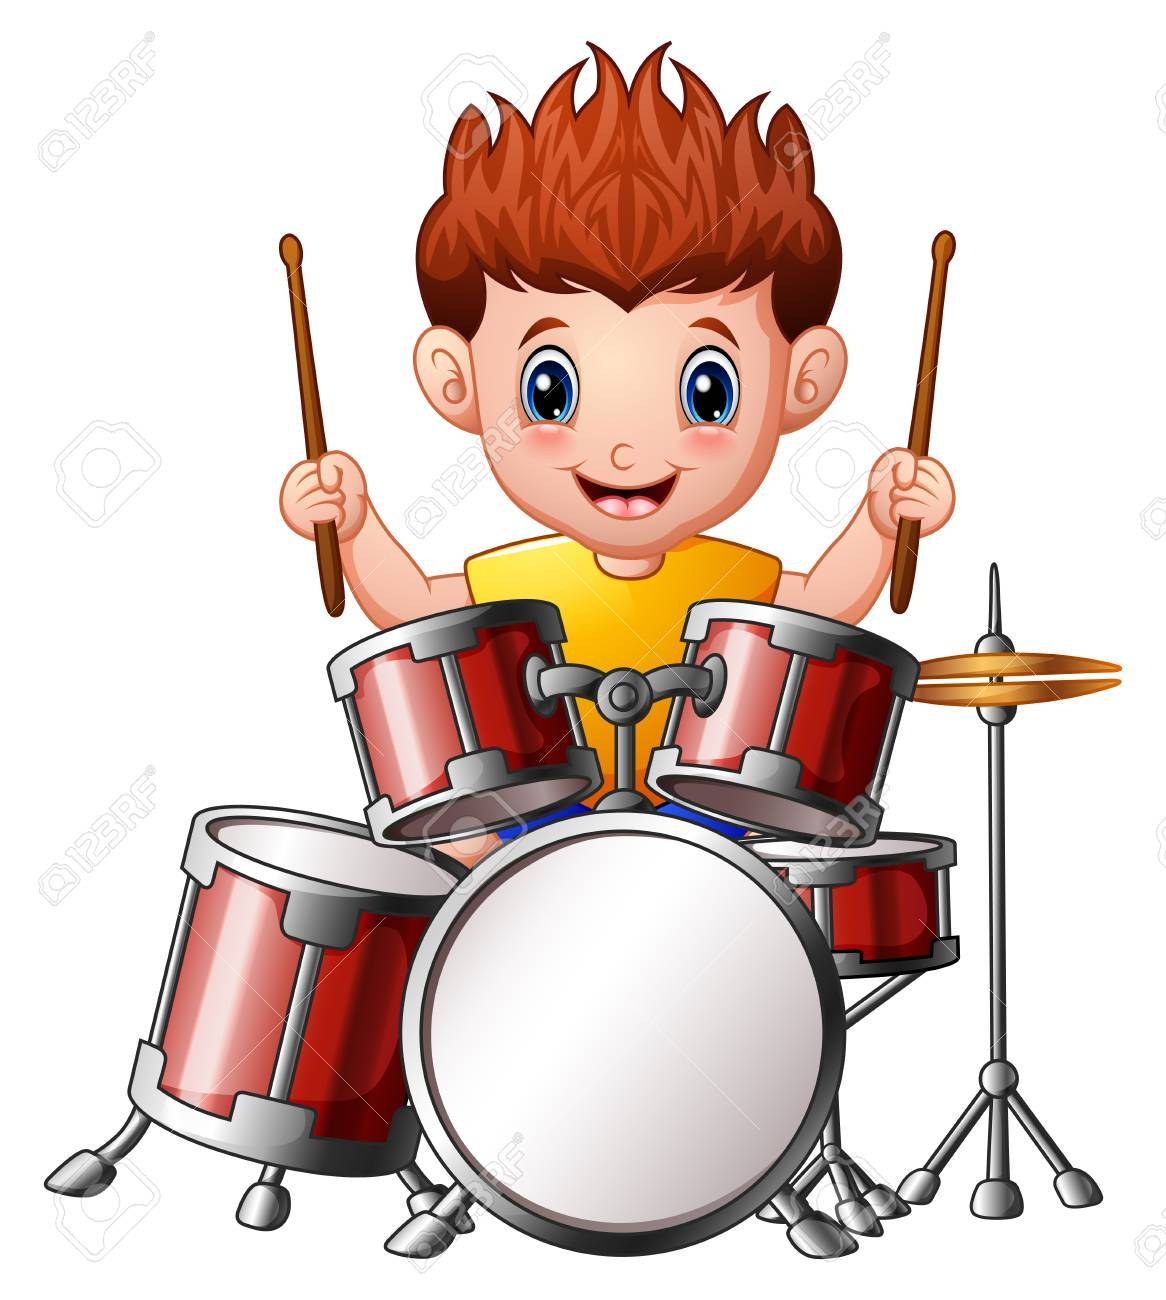 Vector Illustration of Cartoon boy playing a drums.